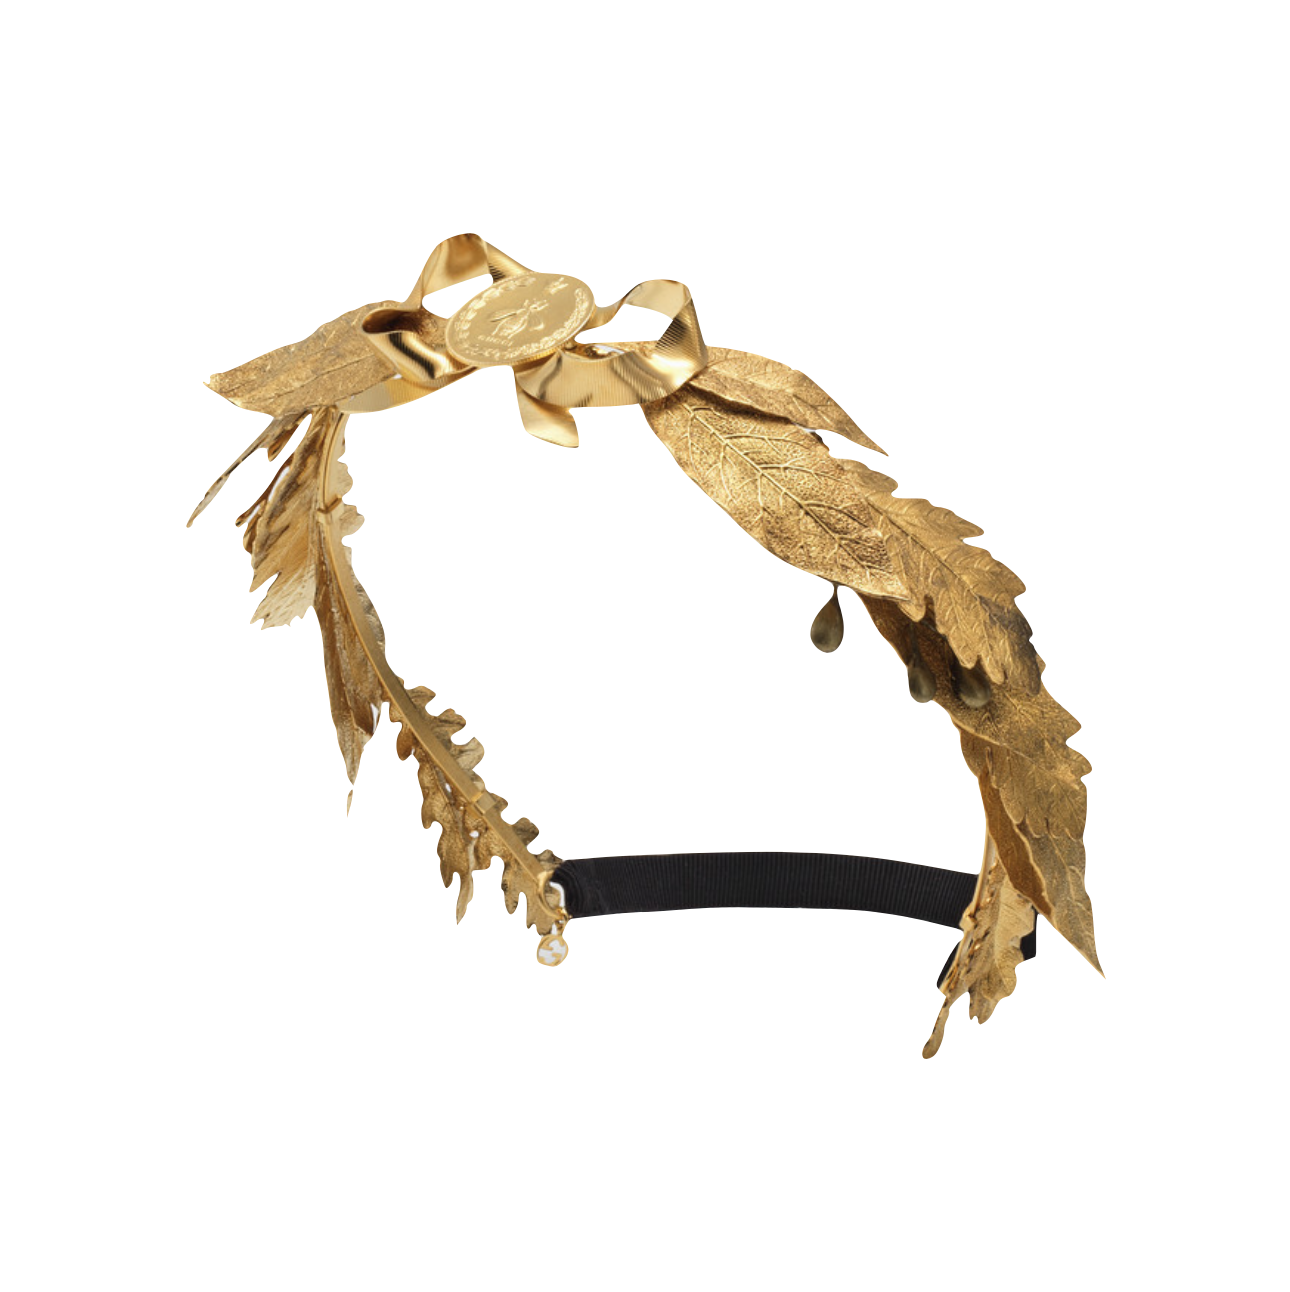 Gucci's metal leaves hairband